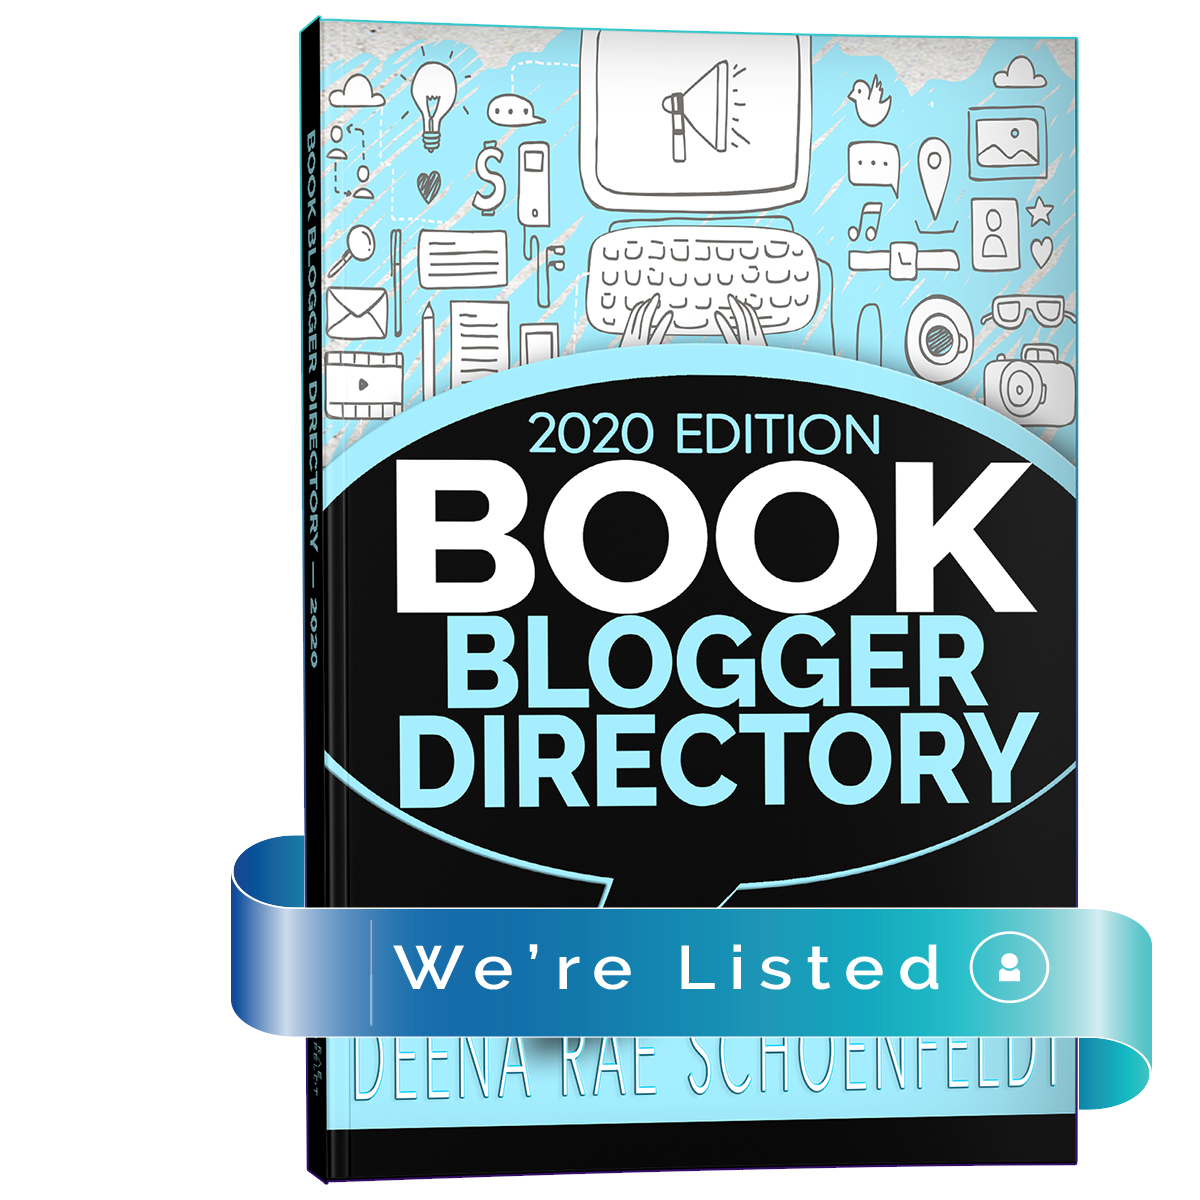 The Book Blogger Directory